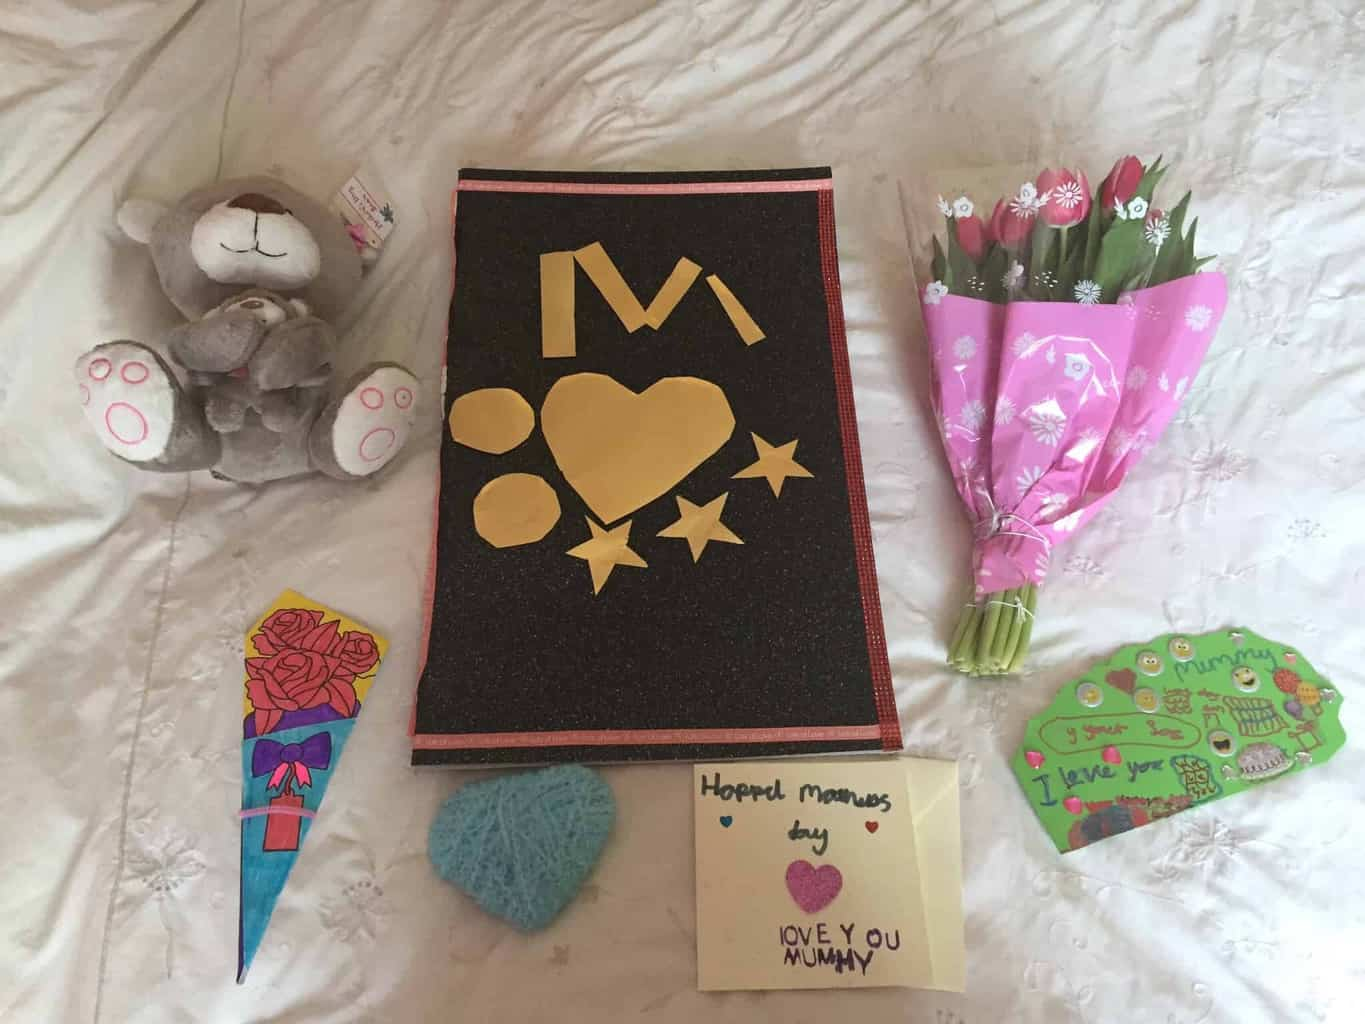 Louisa's first mother's day present from her adopted daughter